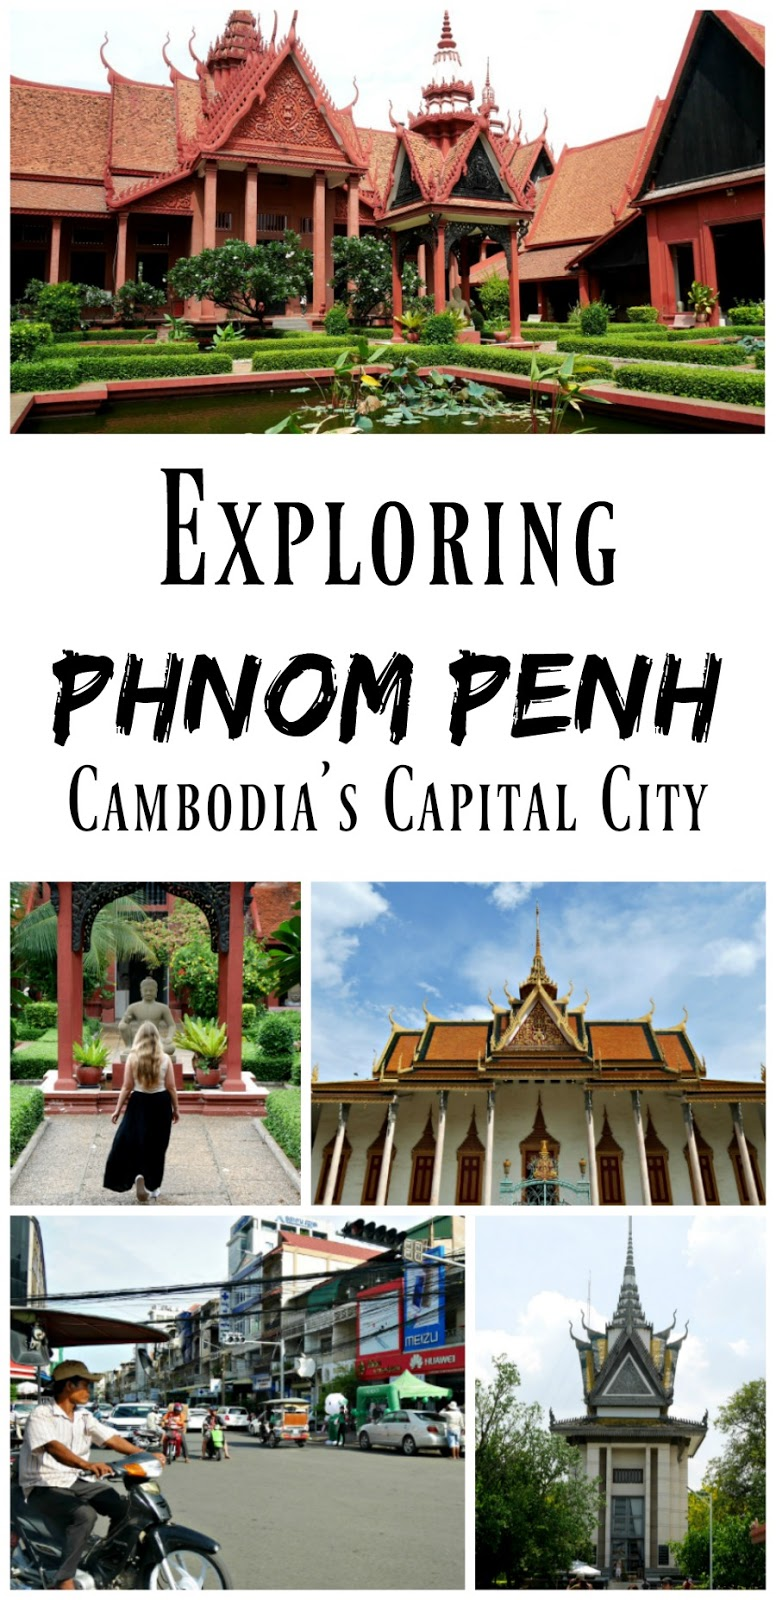 Pin For Later: Exploring Cambodia's capital city, Phnom Penh!